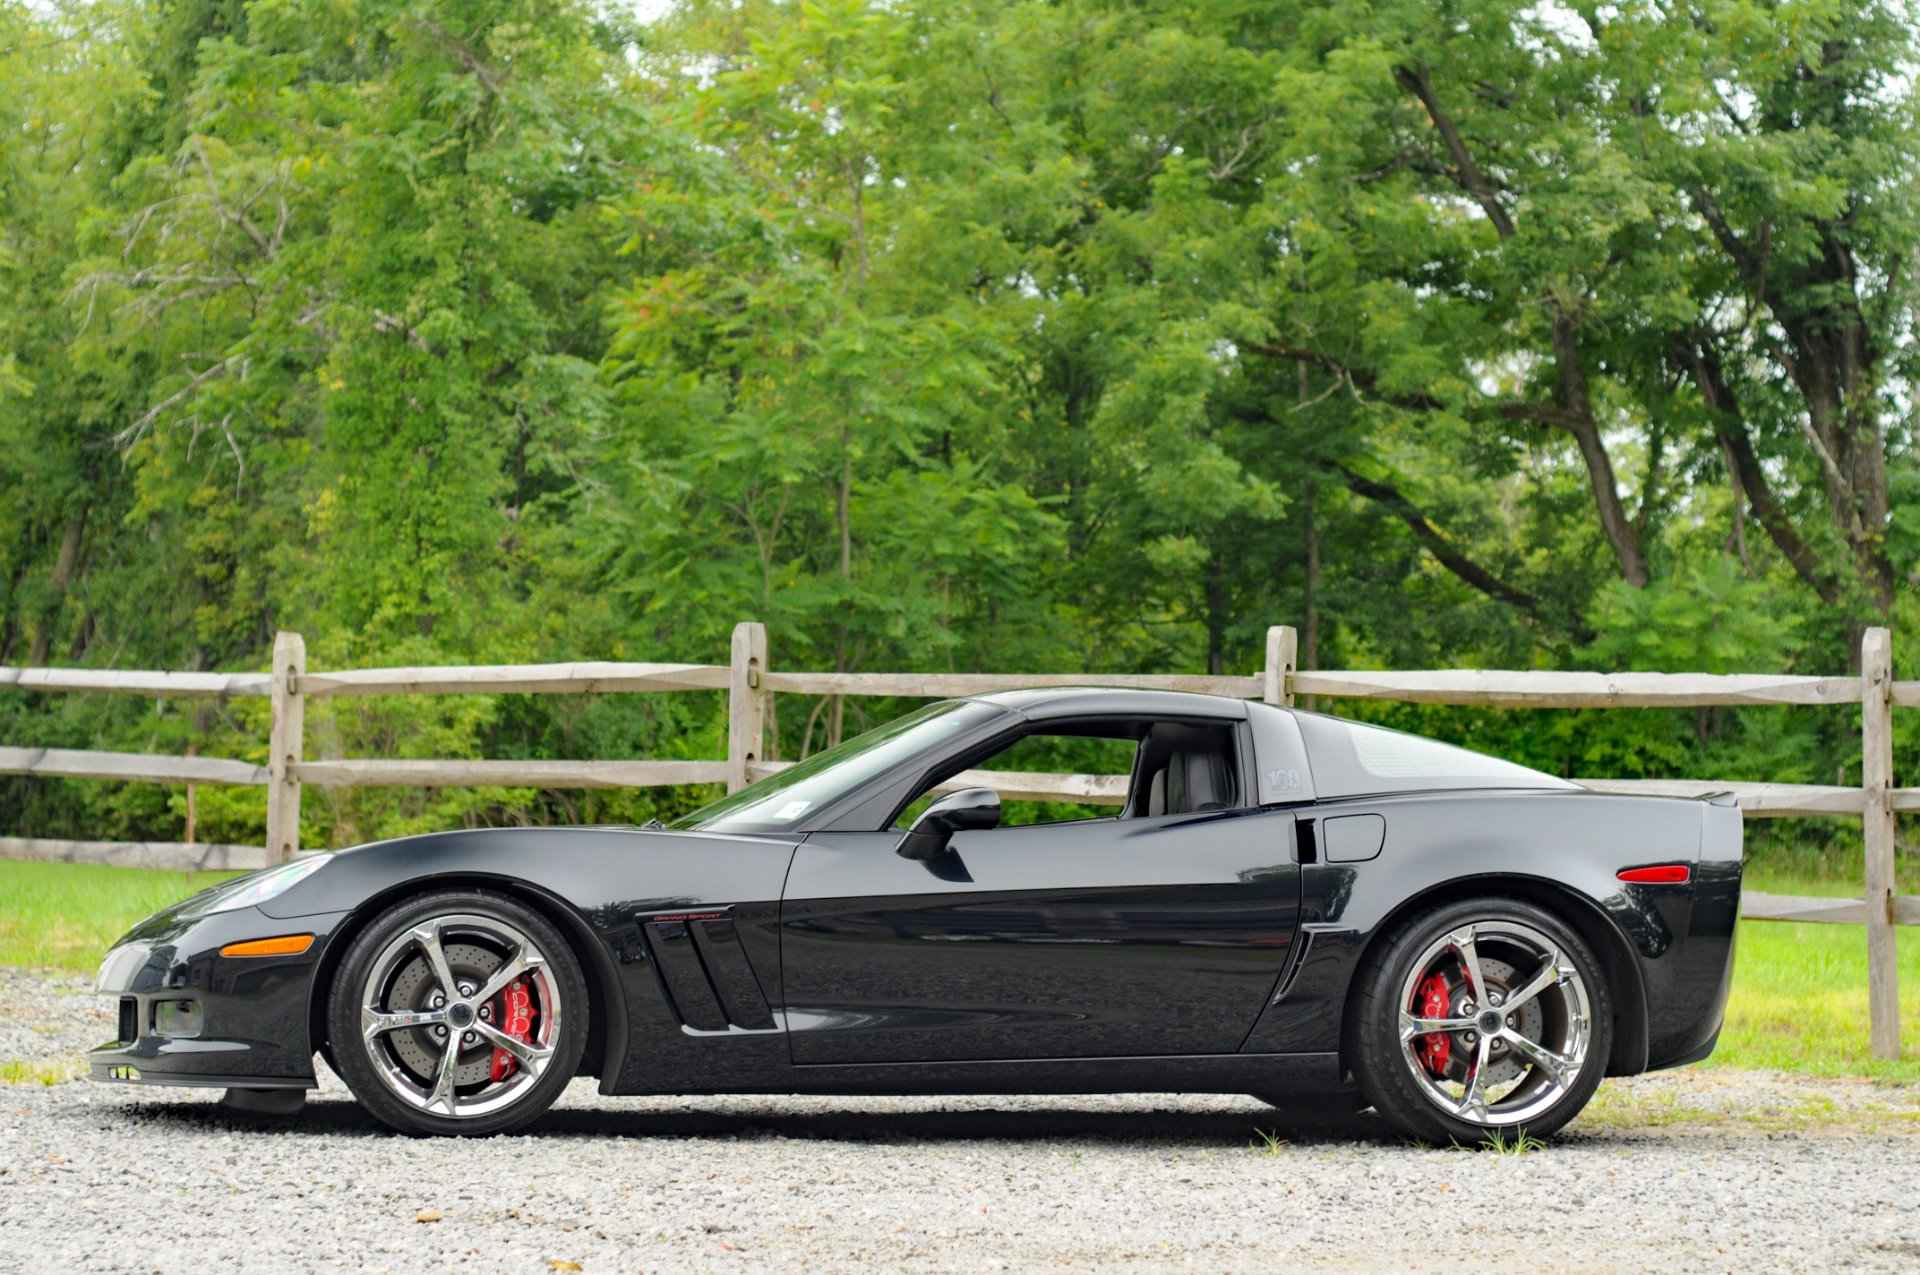 2012 chevrolet corvette z16 grand sport centennial edition. Black Bedroom Furniture Sets. Home Design Ideas